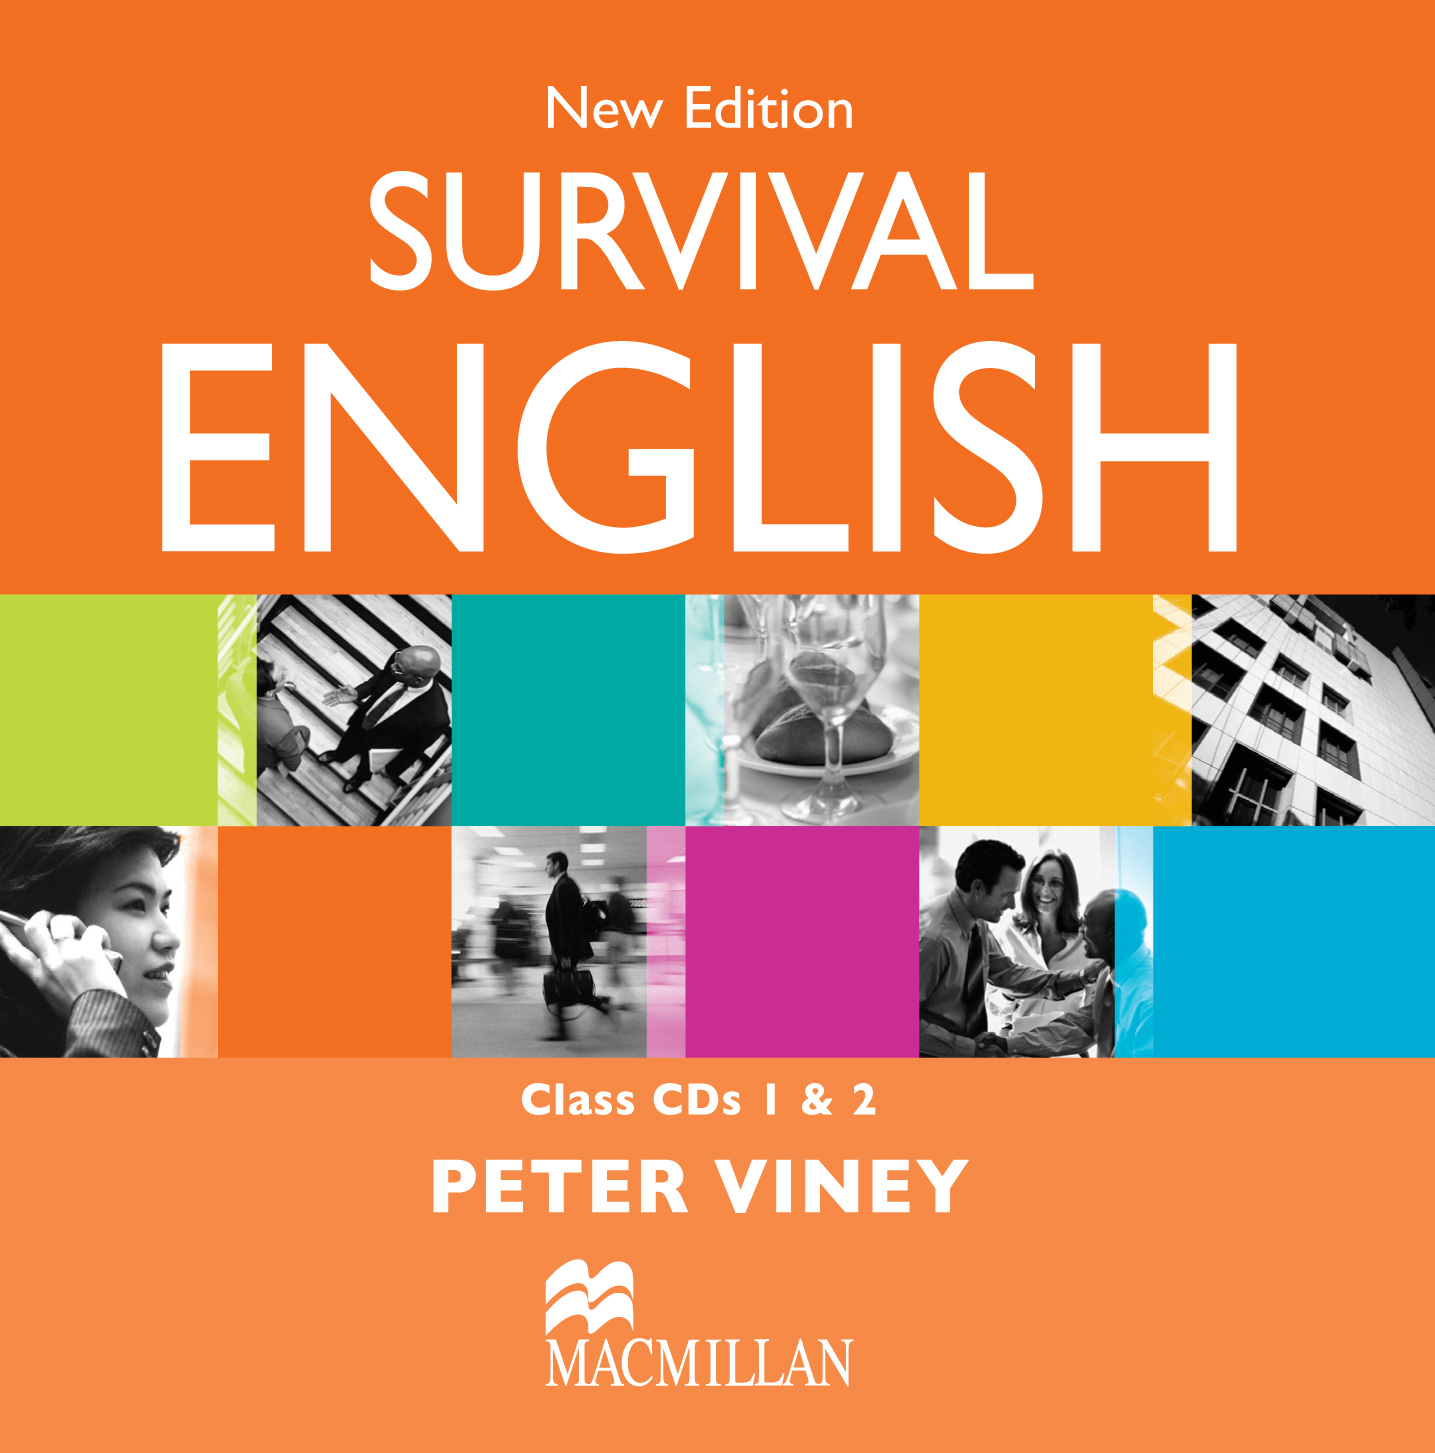 New Edition Survival English Audio CD